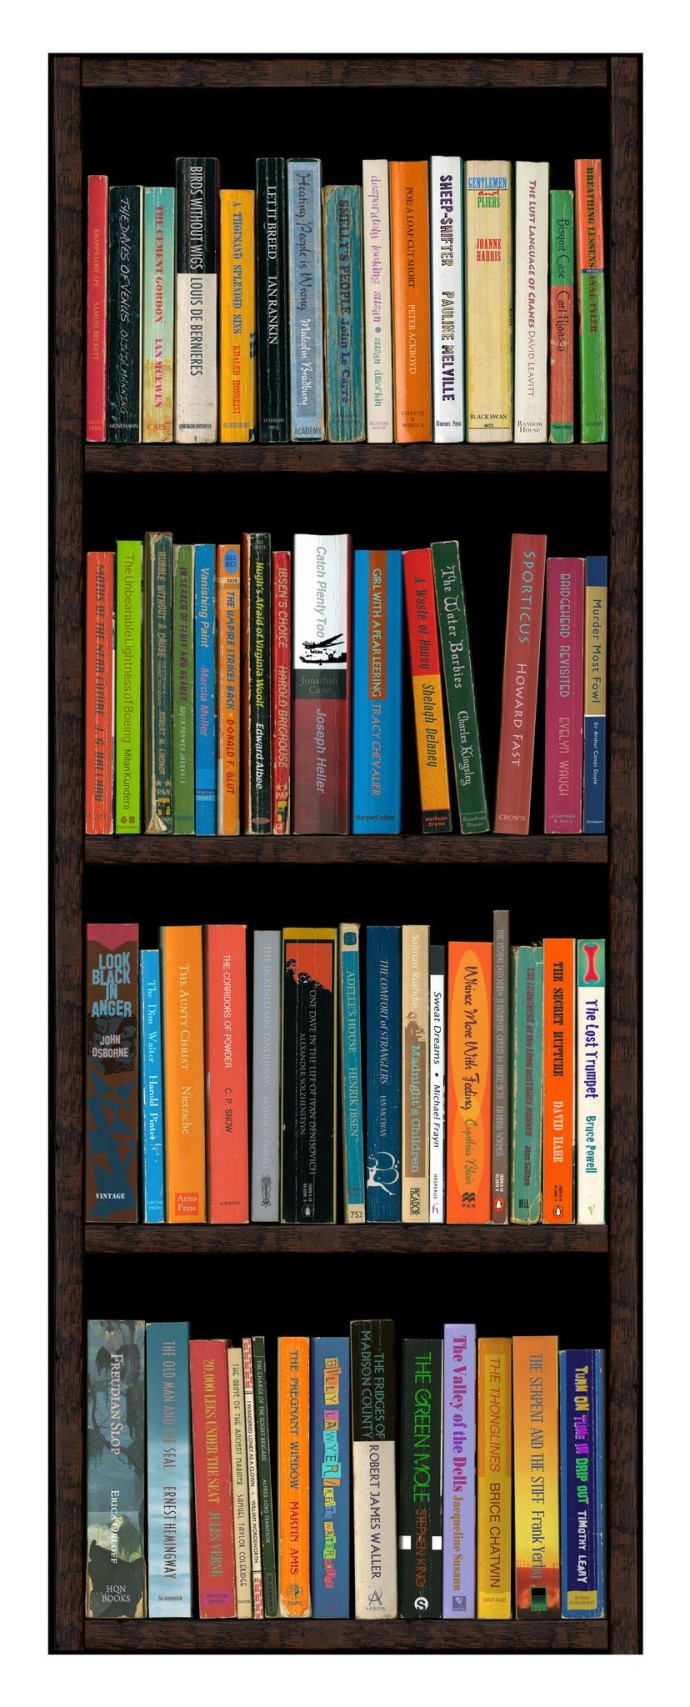 <p><b>Phil Shaw, </b><i>Fiction 10</i>, 2009, eight colour pigment based archival print on Hahnemuhle paper, 46.25 x 19.75 in</p>